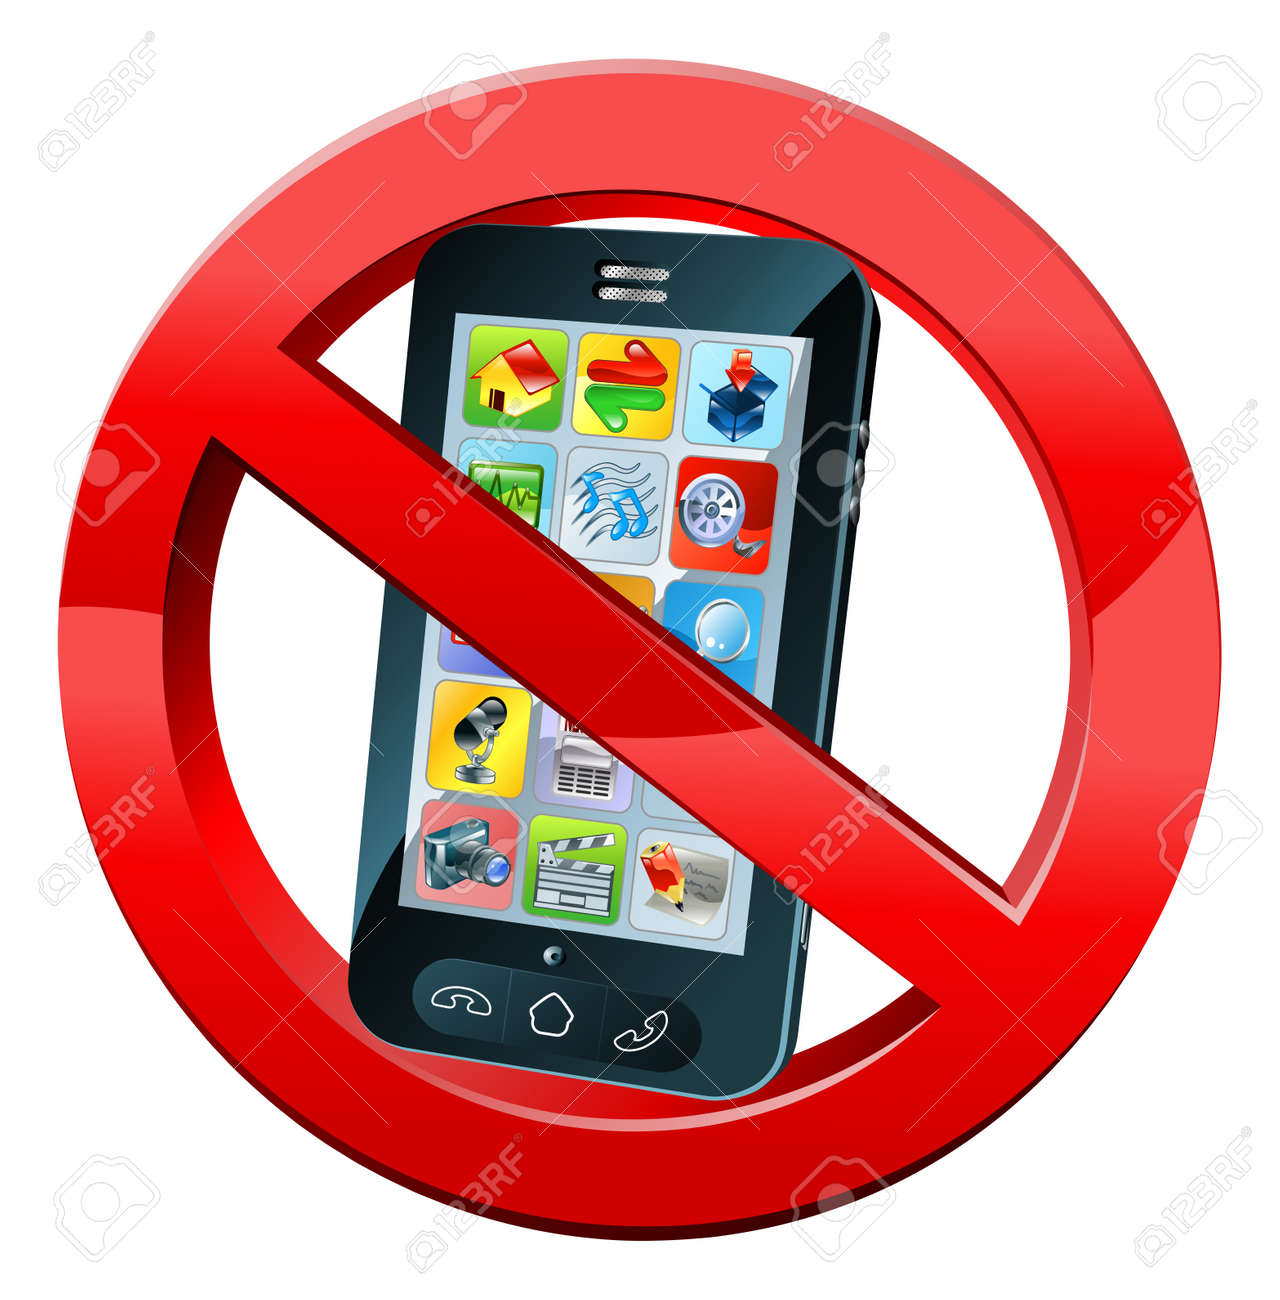 Perfect A No Mobile Phone Or Please Turn Off Phones Sign With A Mobile  EA16